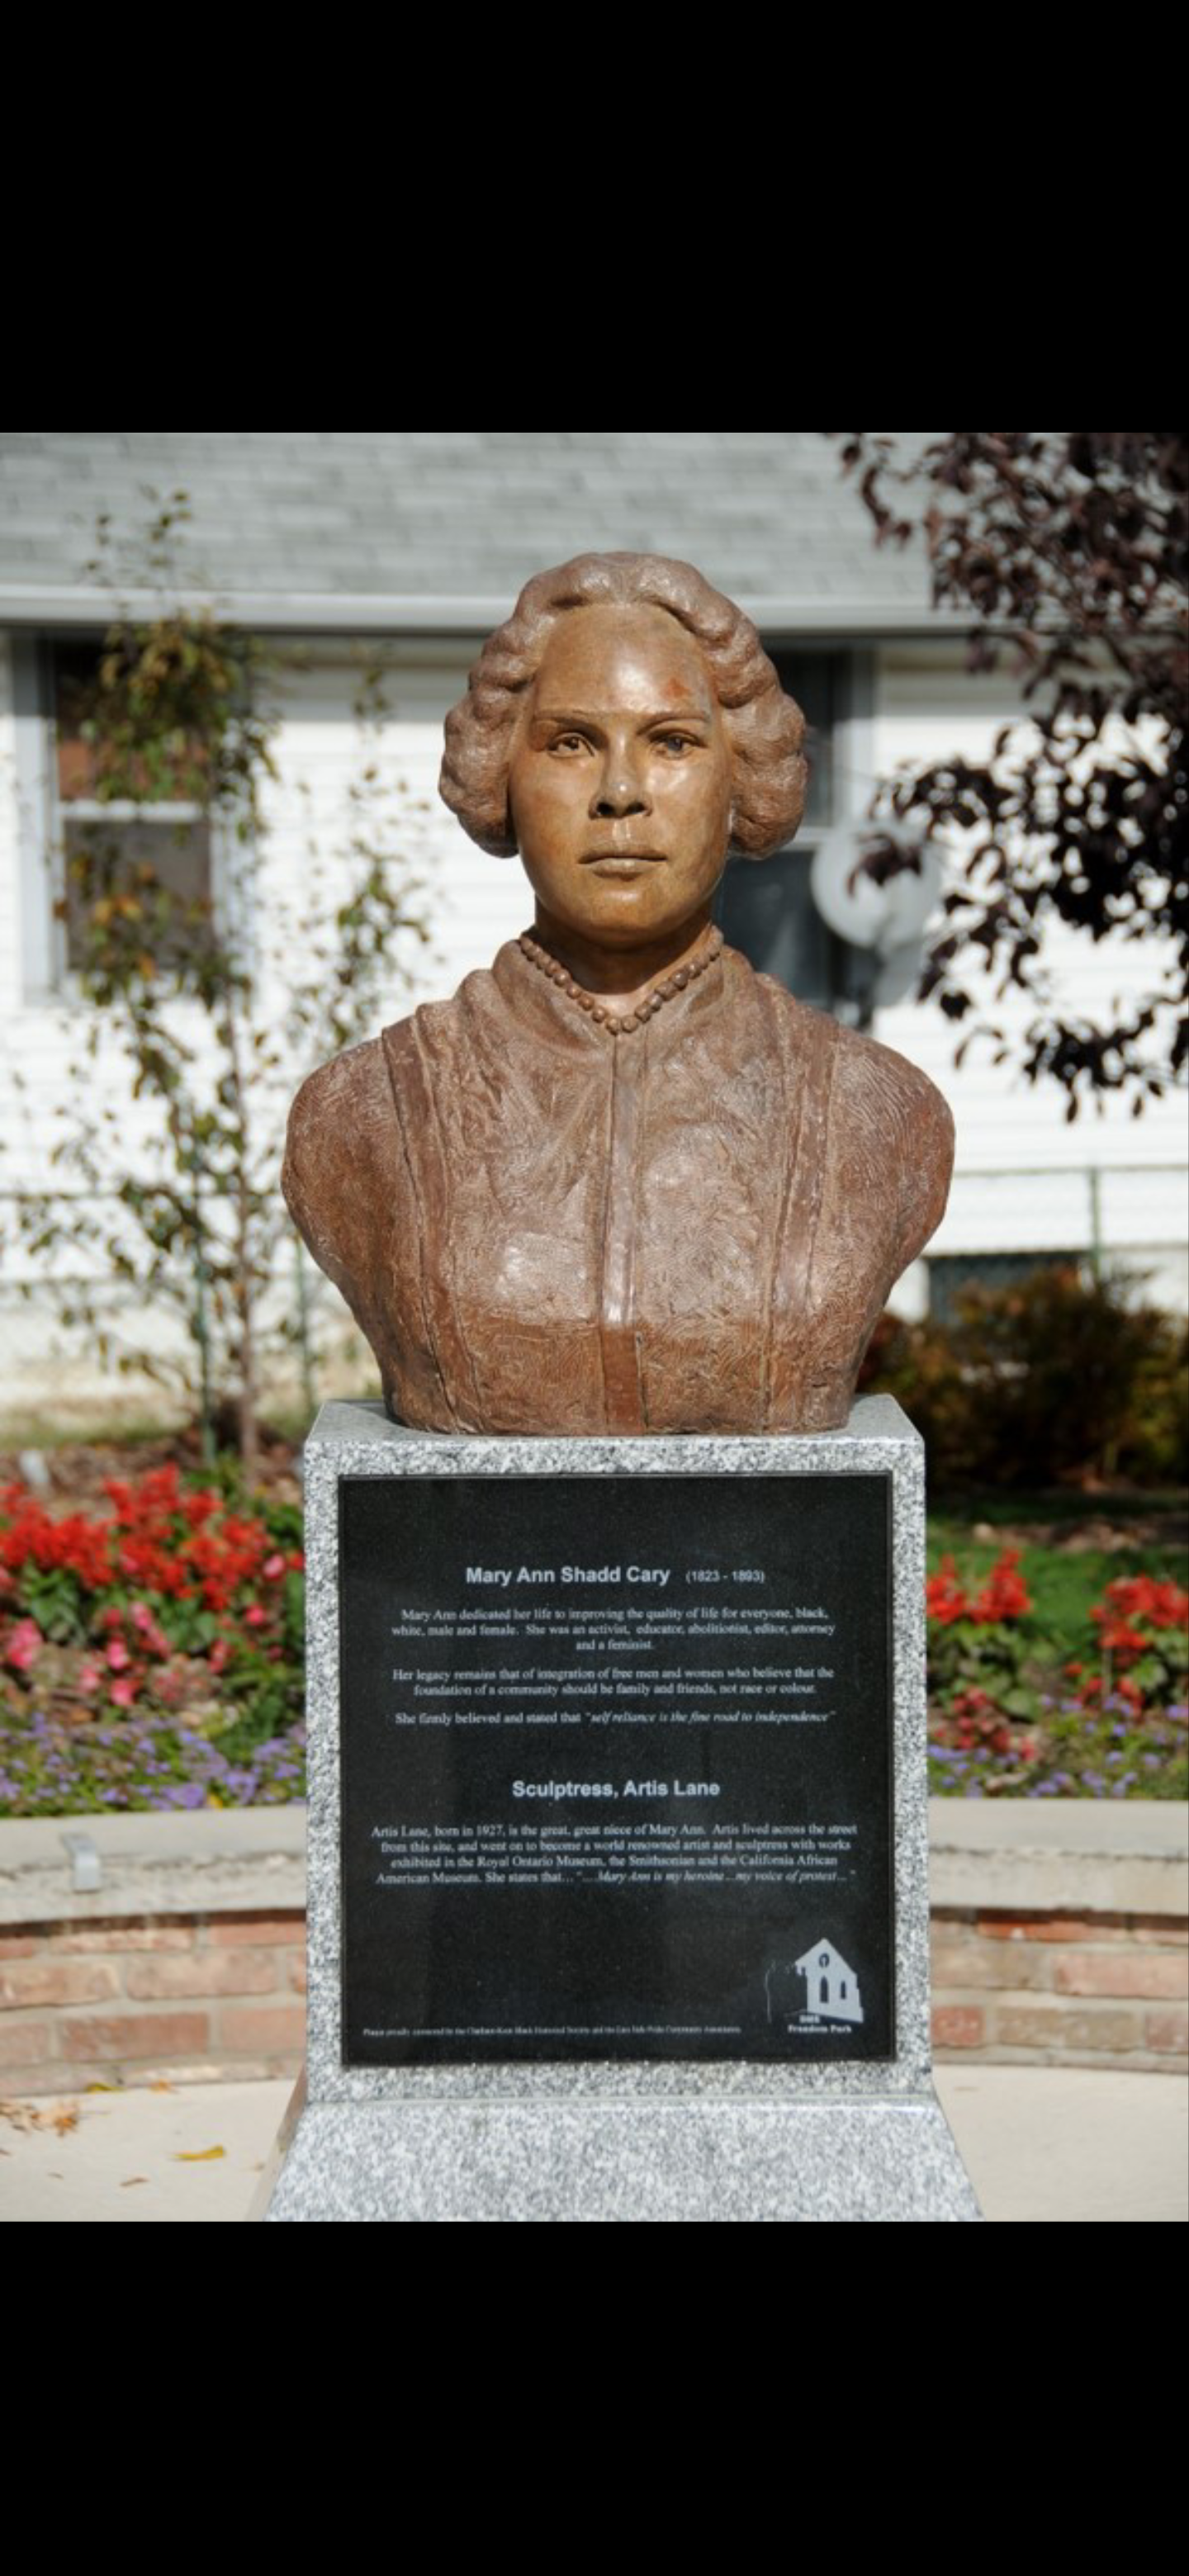 """Depicted in both images in the Freedom Park historical landmark is Mary Shadd. The park was the original site for the BME Church, a gathering place for abolitionists, including Shadd. Her message for the movement, as inscribed on the placard, was to """"improve the quality of life for everyone."""""""